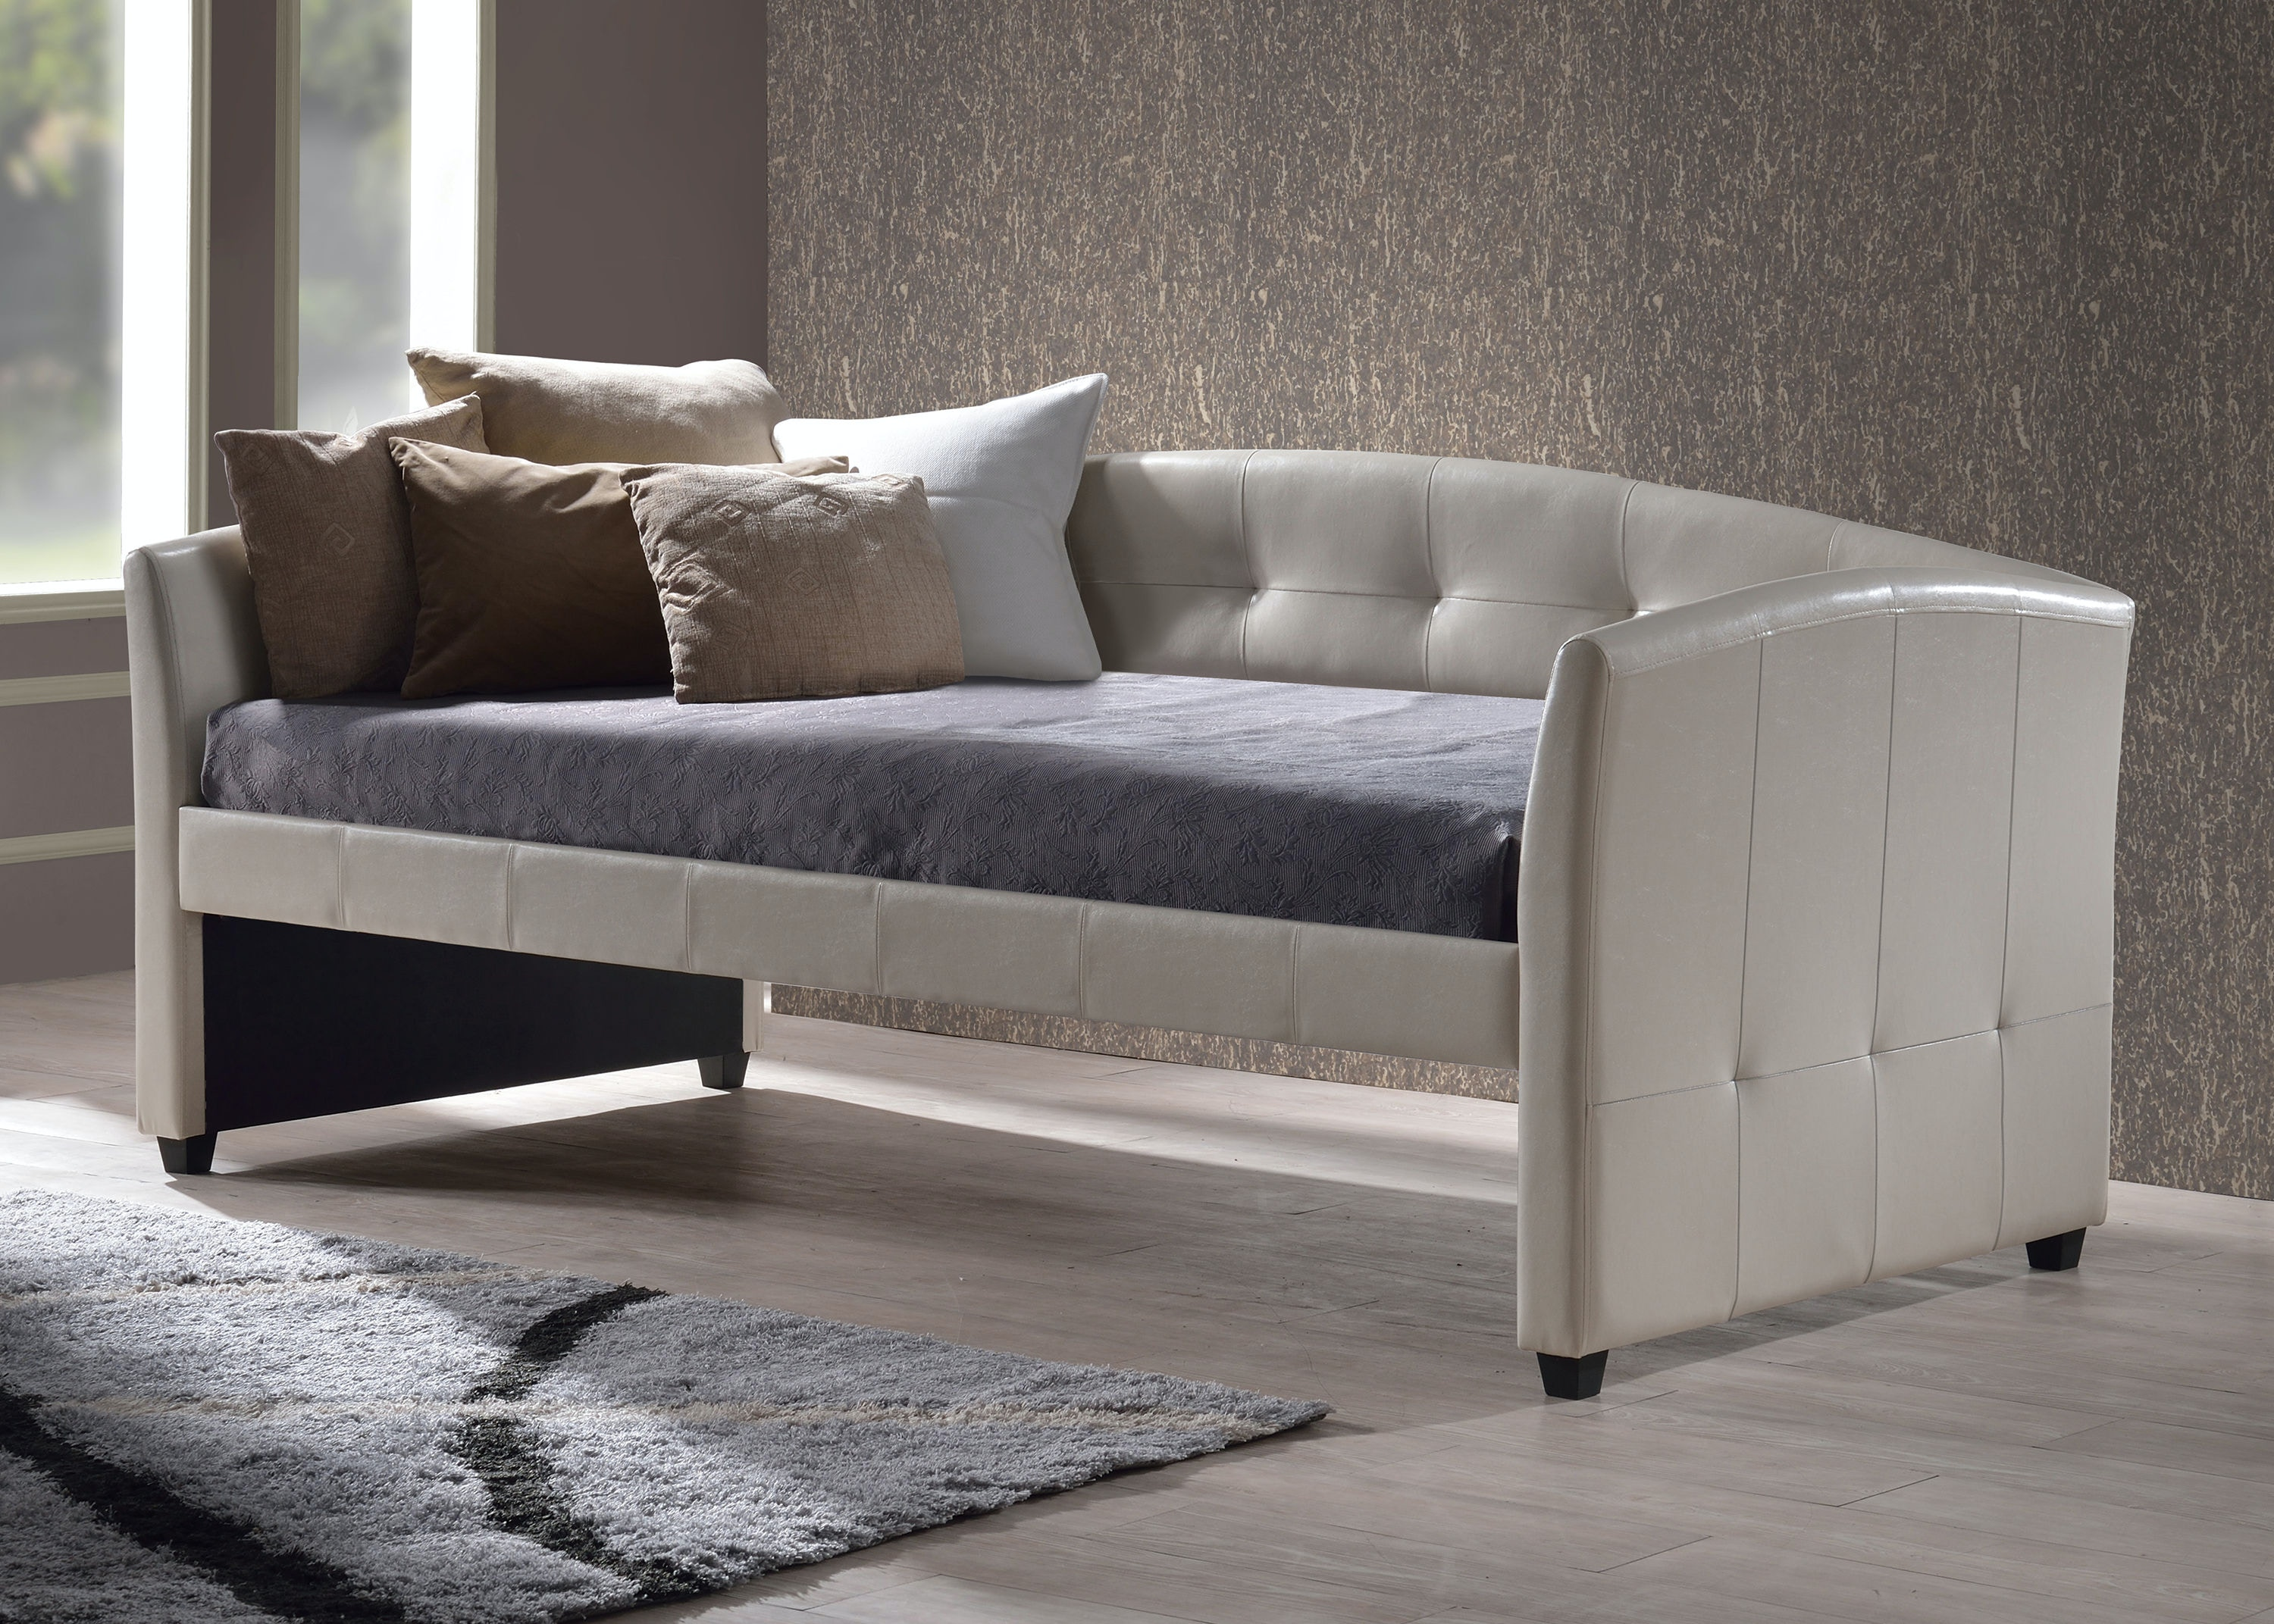 Hillsdale Furniture Bedroom Napoli Daybed 1061DB